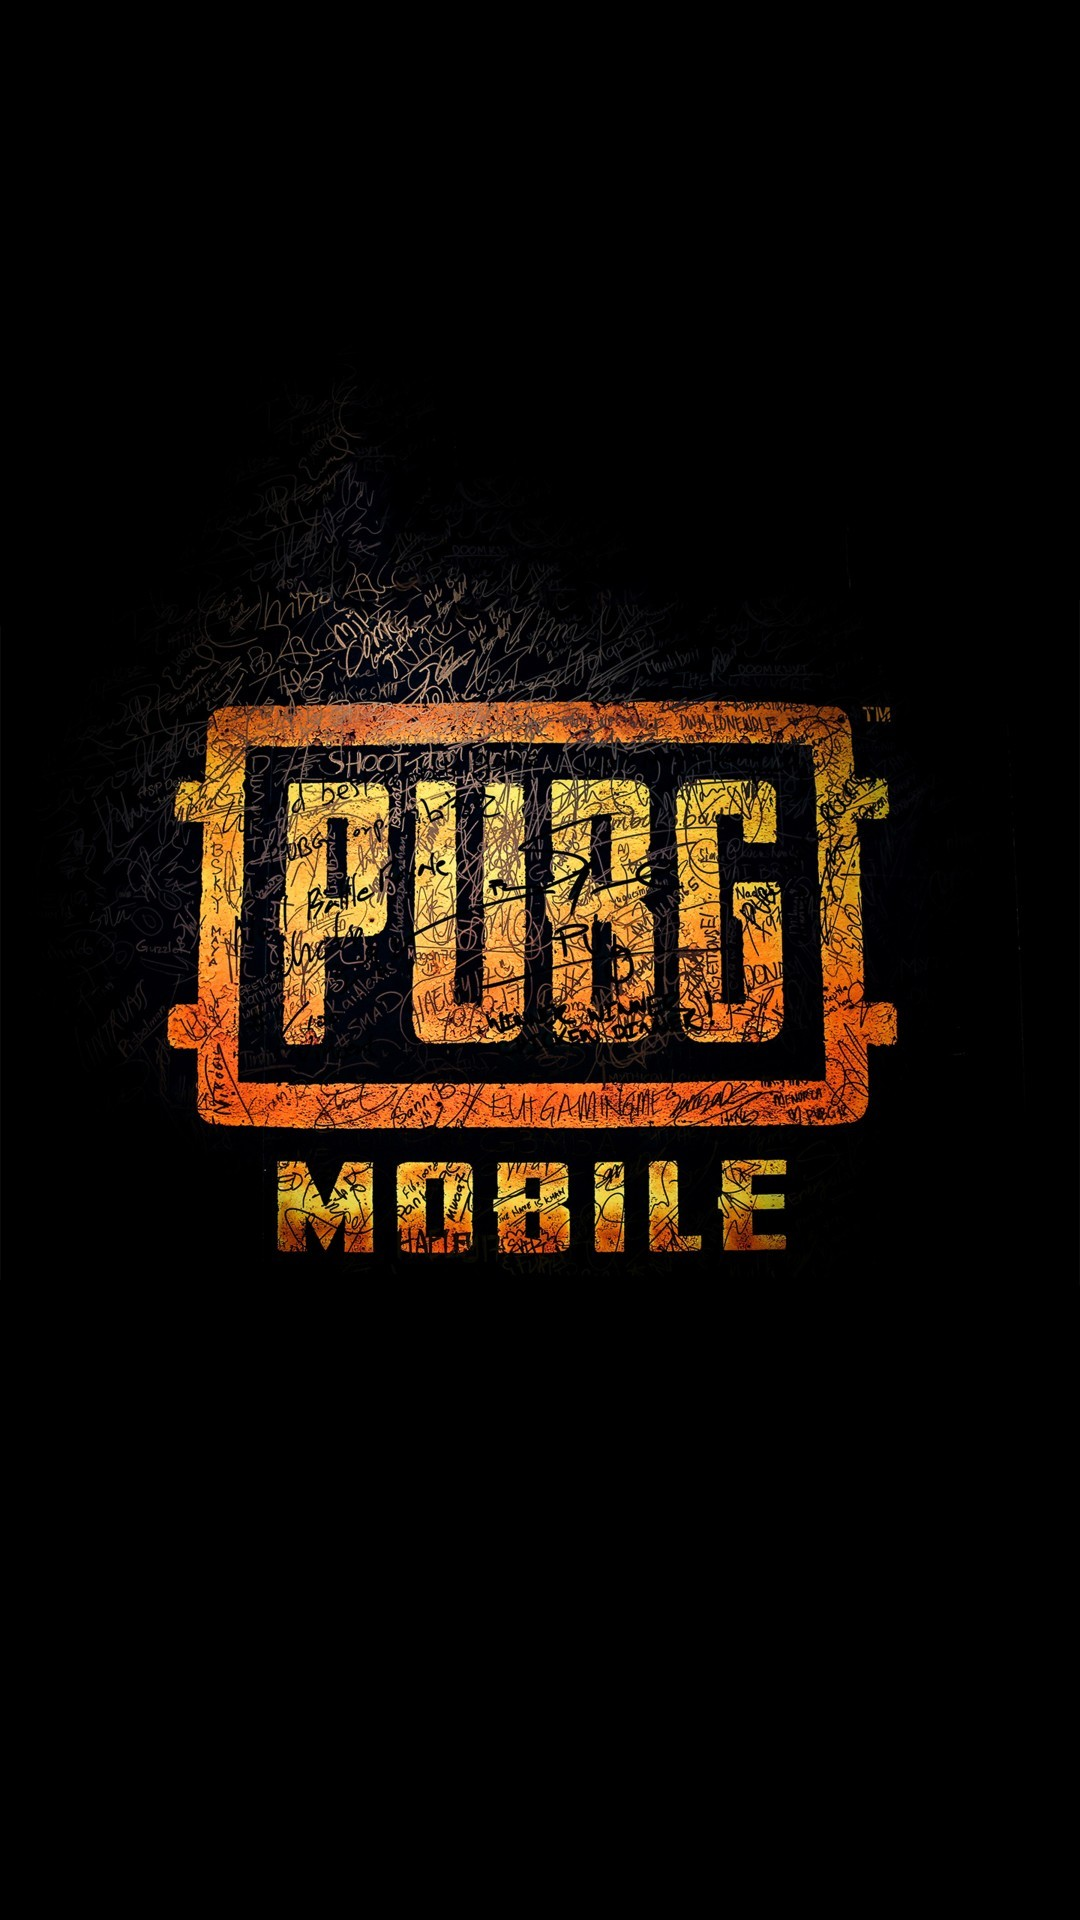 Free PUBG Mobile phone wallpaper by texasrhb8152002